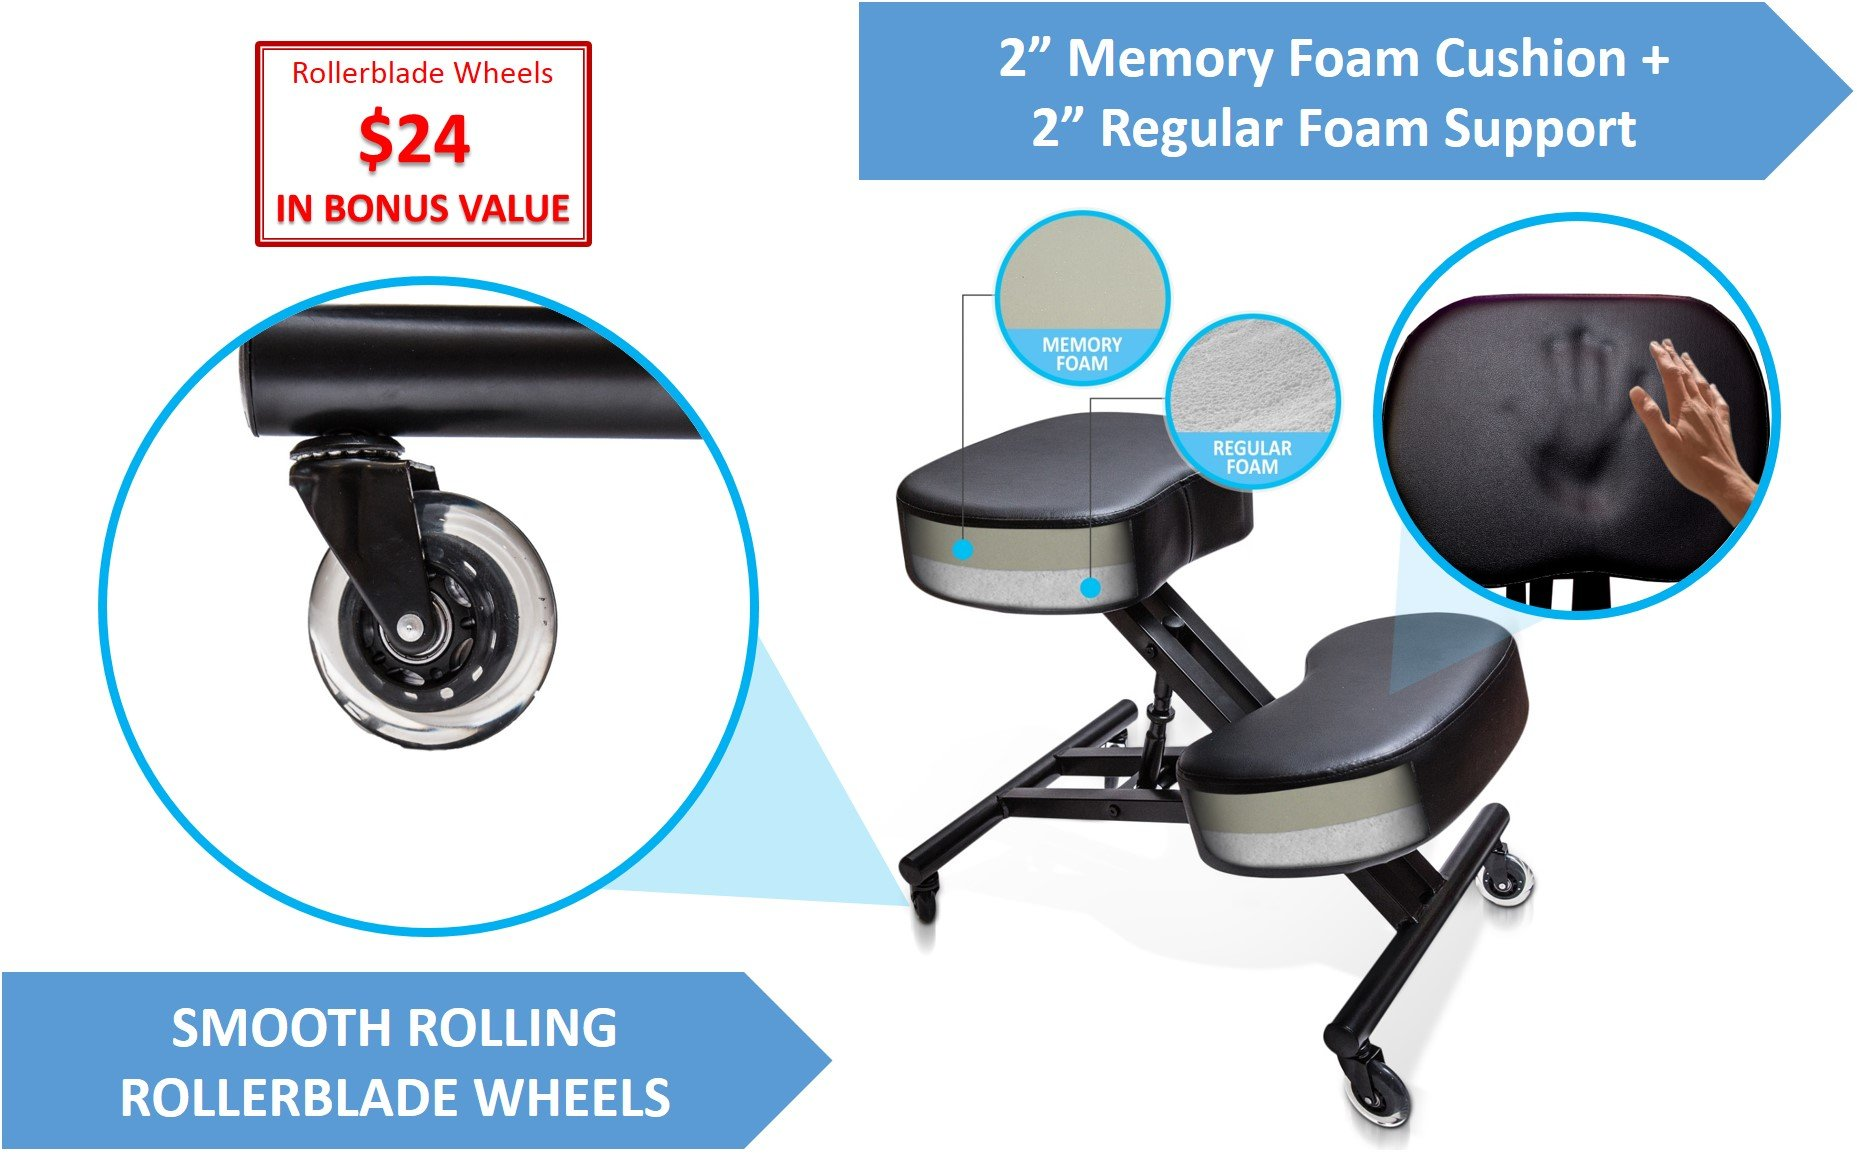 Sleekform Ergonomic Kneeling Chair M2 (Memory/Regular Foam), Adjustable Stool for Home, Office, and Meditation - Rollerblade Casters by Sleekform (Image #2)